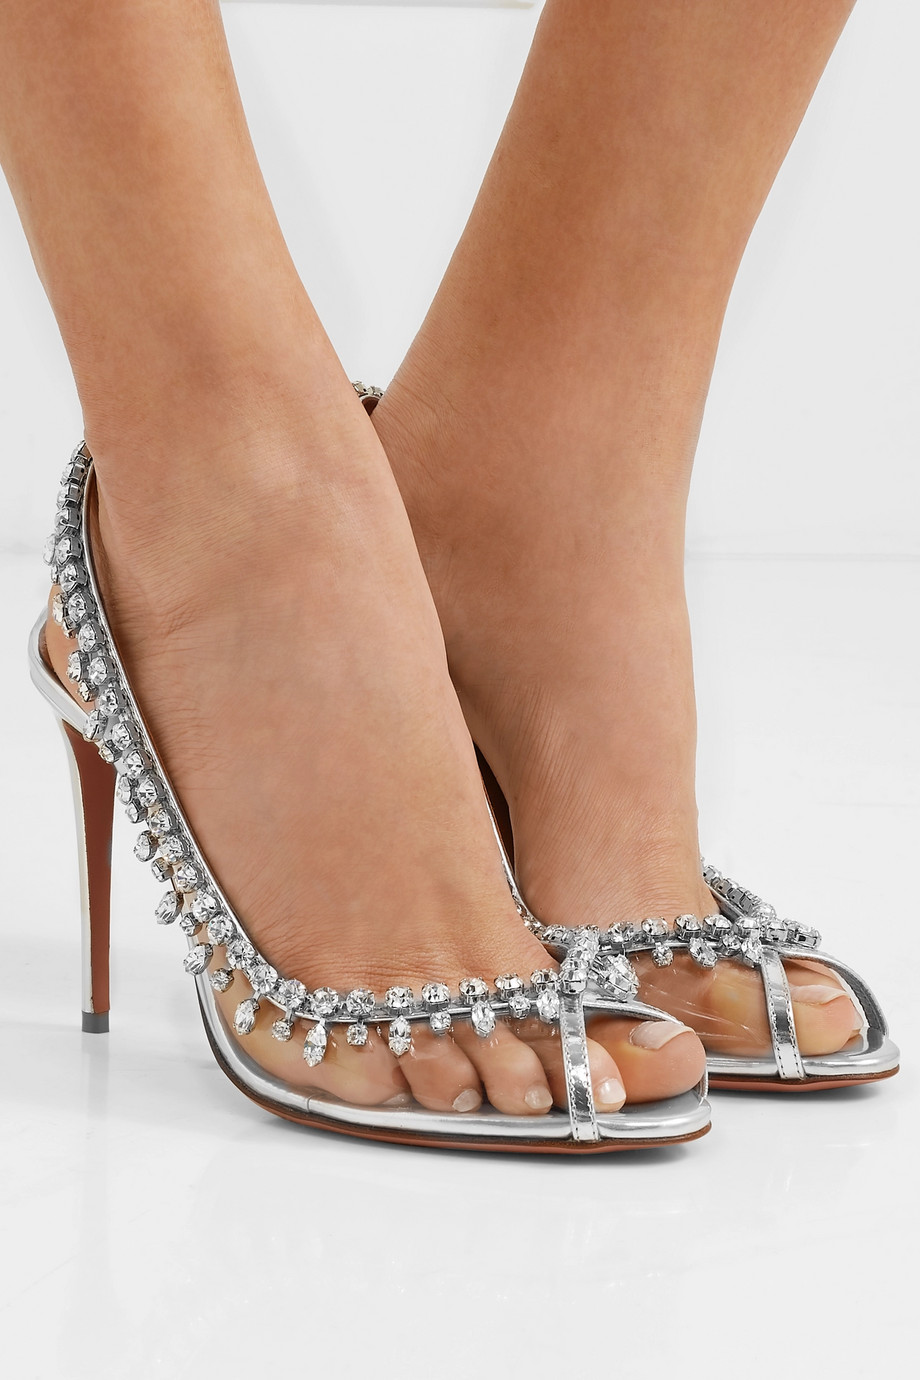 Aquazzura Temptation 105 embellished metallic leather and PVC slingback pumps